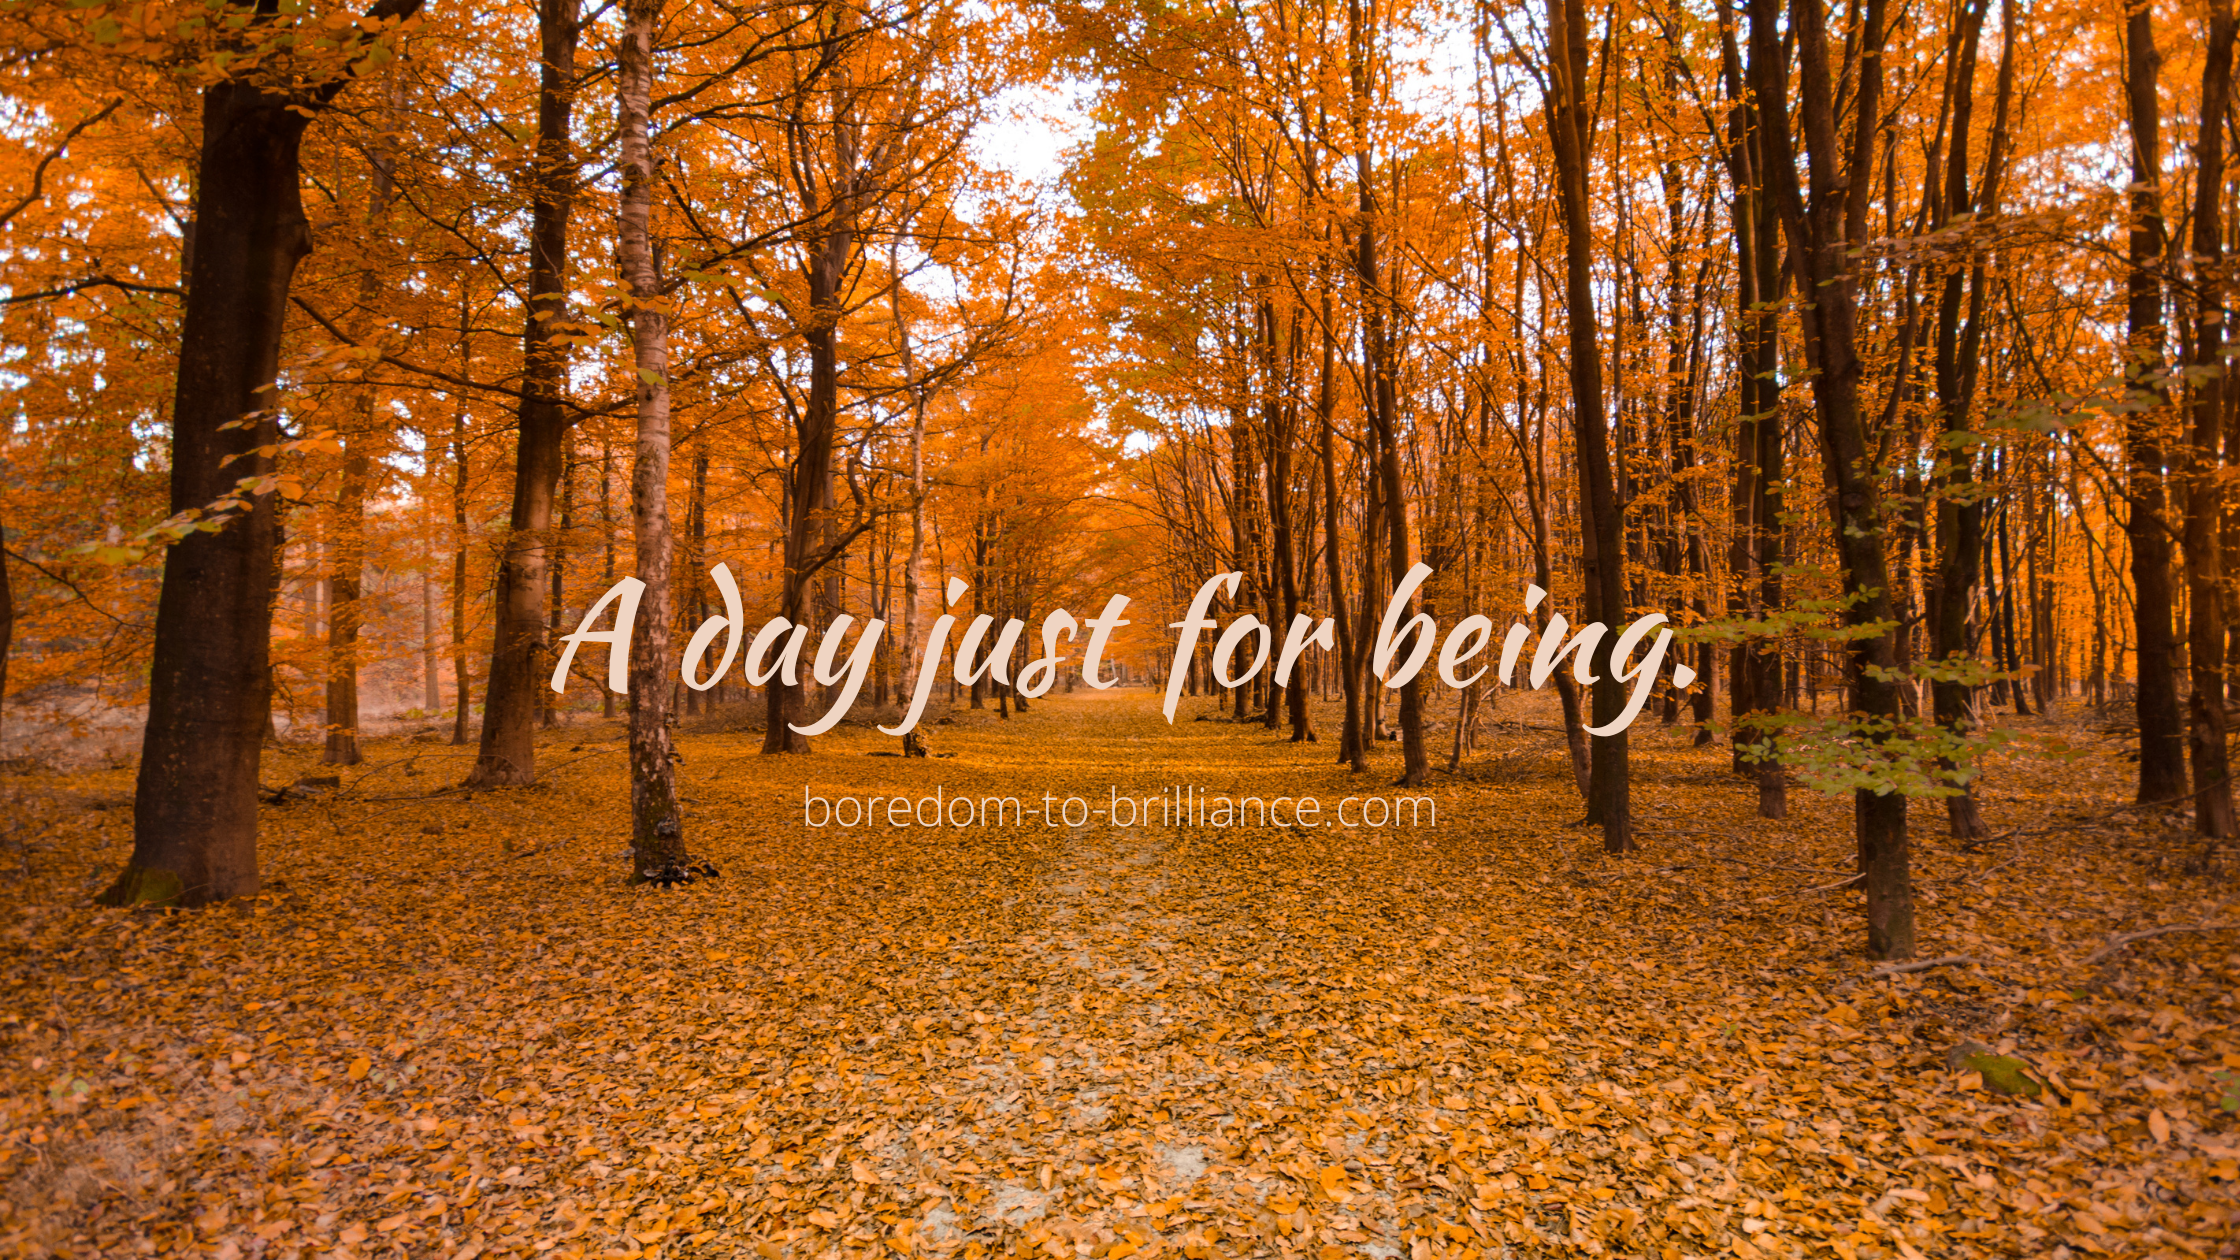 A day just for being.